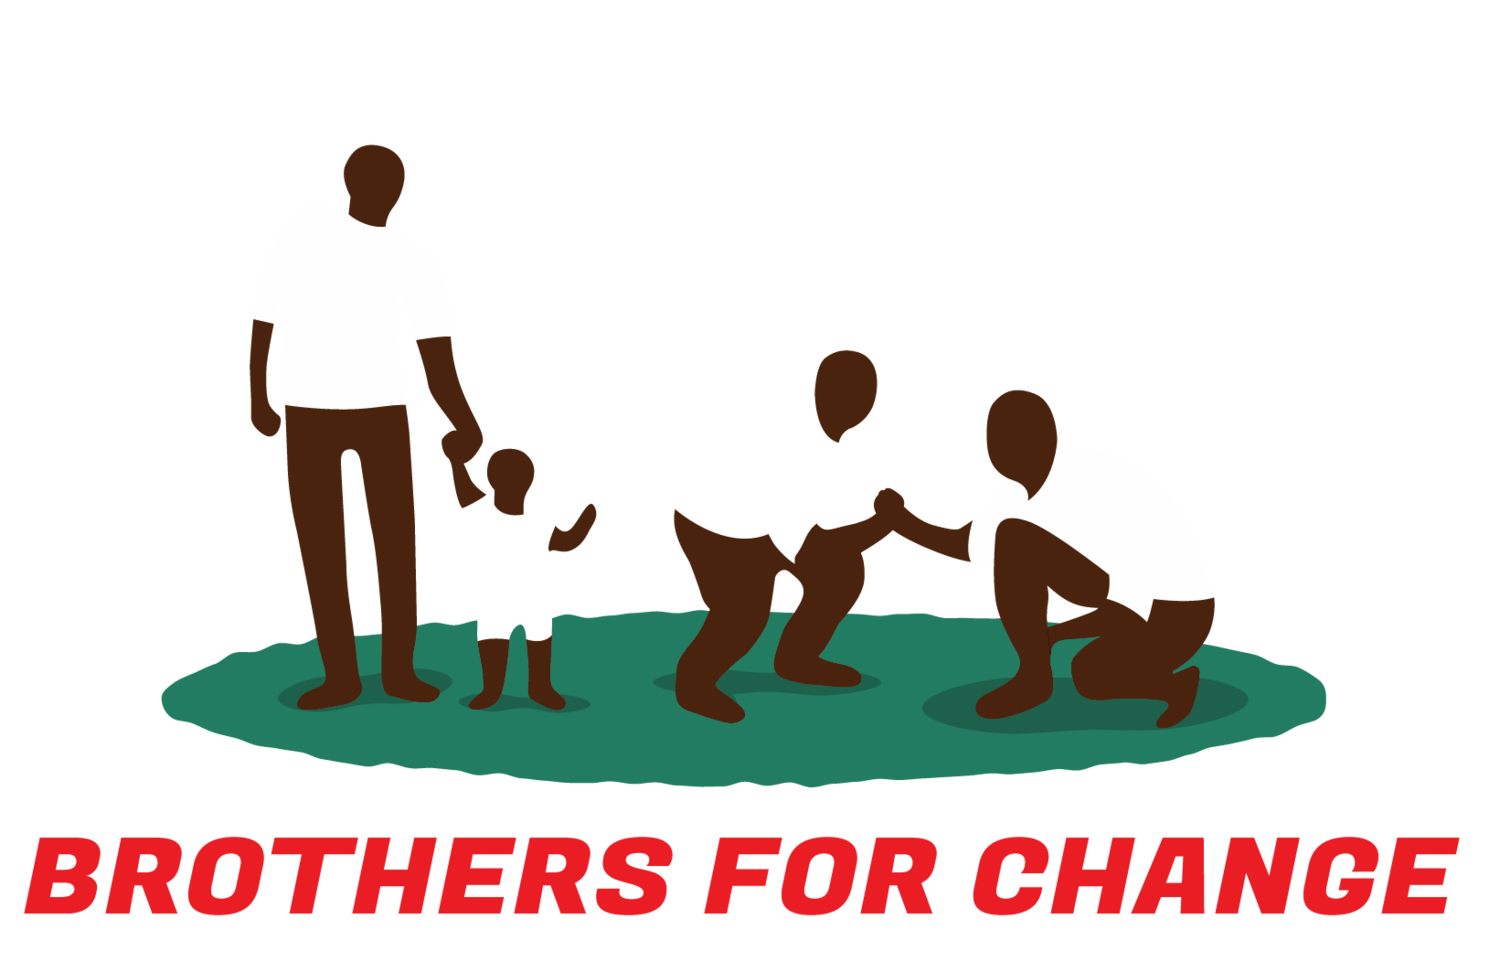 Brothers For Change Inc.